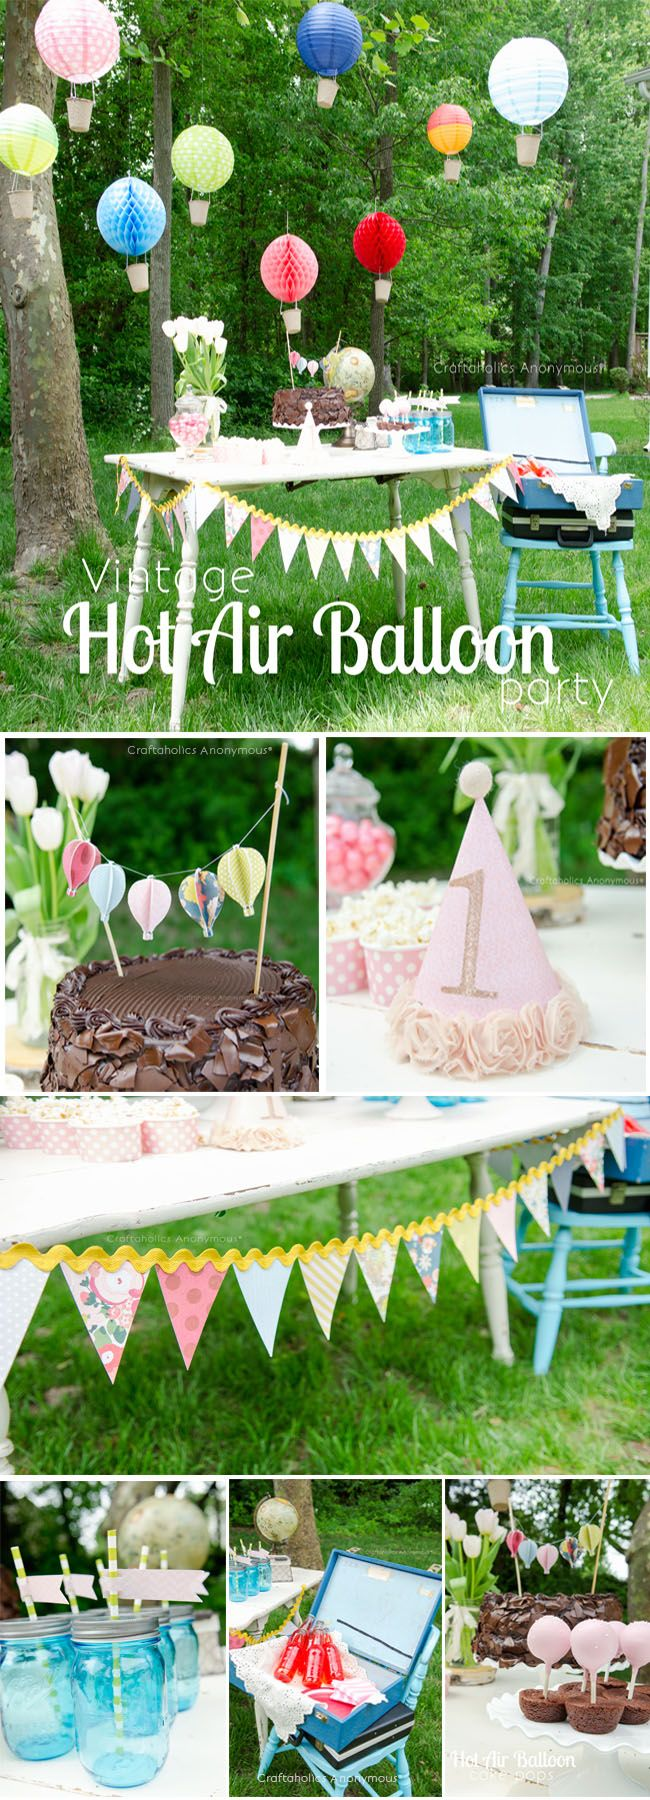 Vintage Hot Air Balloon Birthday Party. Love the hot air balloons, the bunting, and the hot air balloon cake pops.